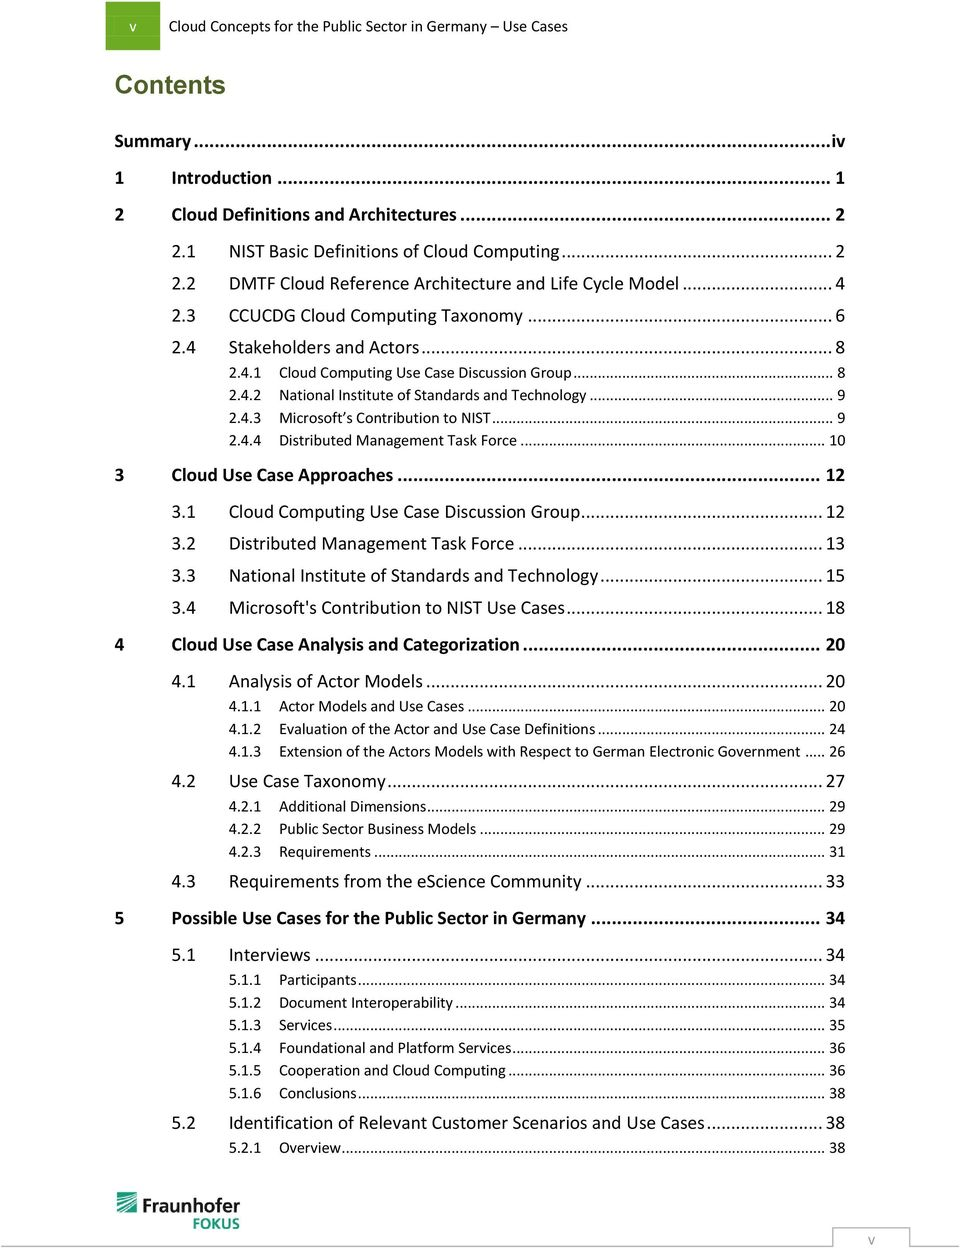 .. 8 2.4.2 National Institute of Standards and Technology... 9 2.4.3 Microsoft s Contribution to NIST... 9 2.4.4 Distributed Management Task Force... 10 3 Cloud Use Case Approaches... 12 3.